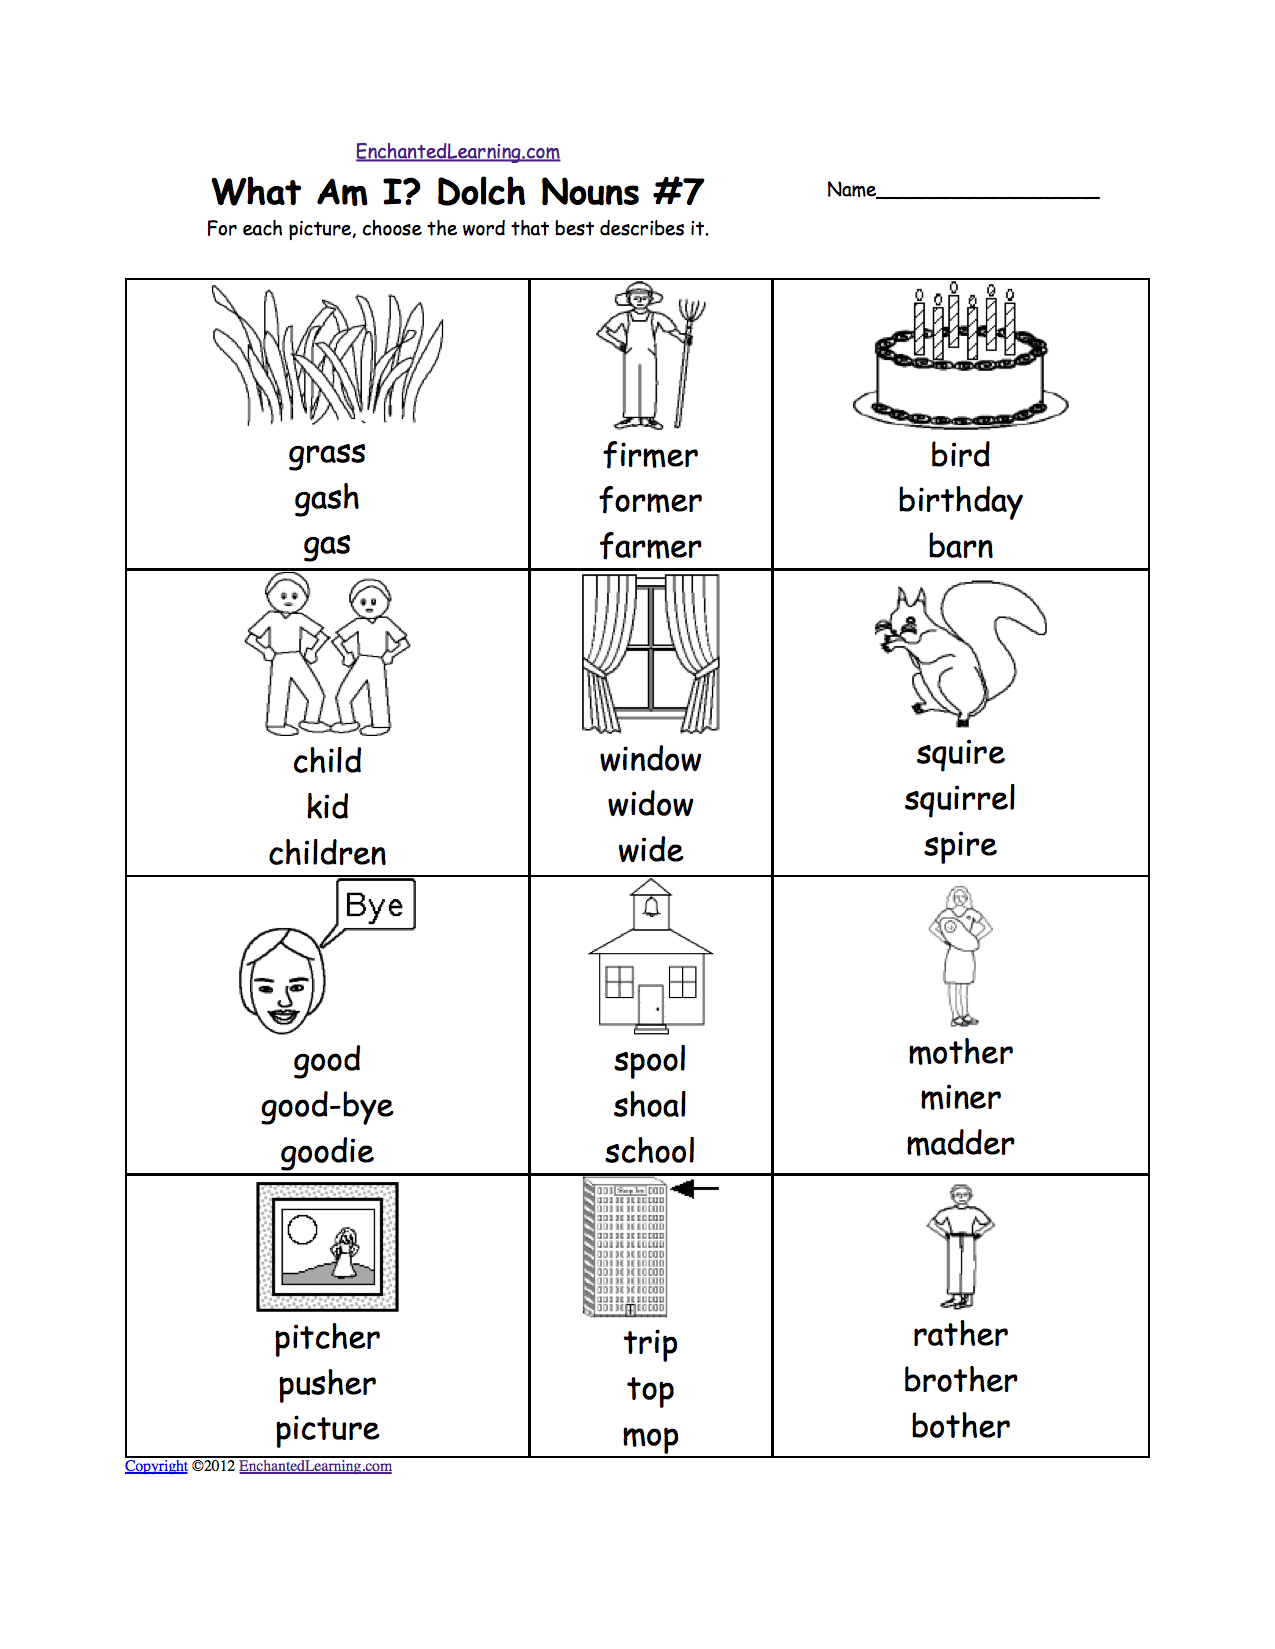 worksheet Who Am I Worksheet what am i dolch nouns worksheet printouts enchantedlearning com 7 for each picture of a noun choose the word that best describes it words are grass farmer bi